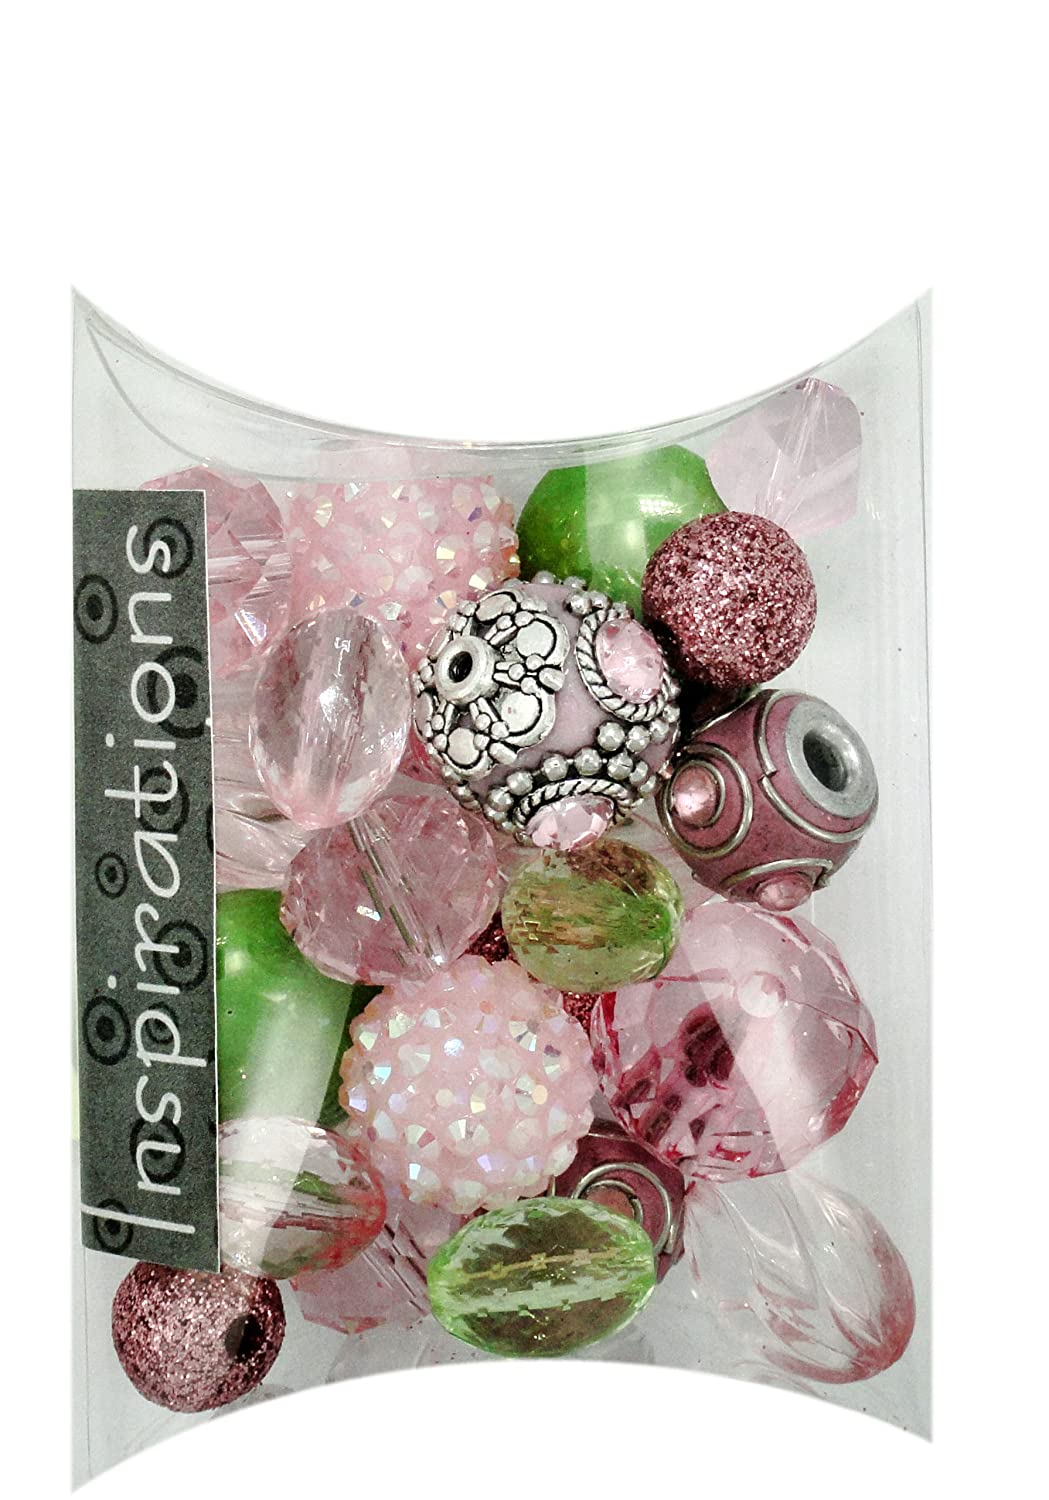 Jesse James Beads Pink/Green Inspirations Beads 50g-Secret Garden Jesse James & Co. Inc. 5734